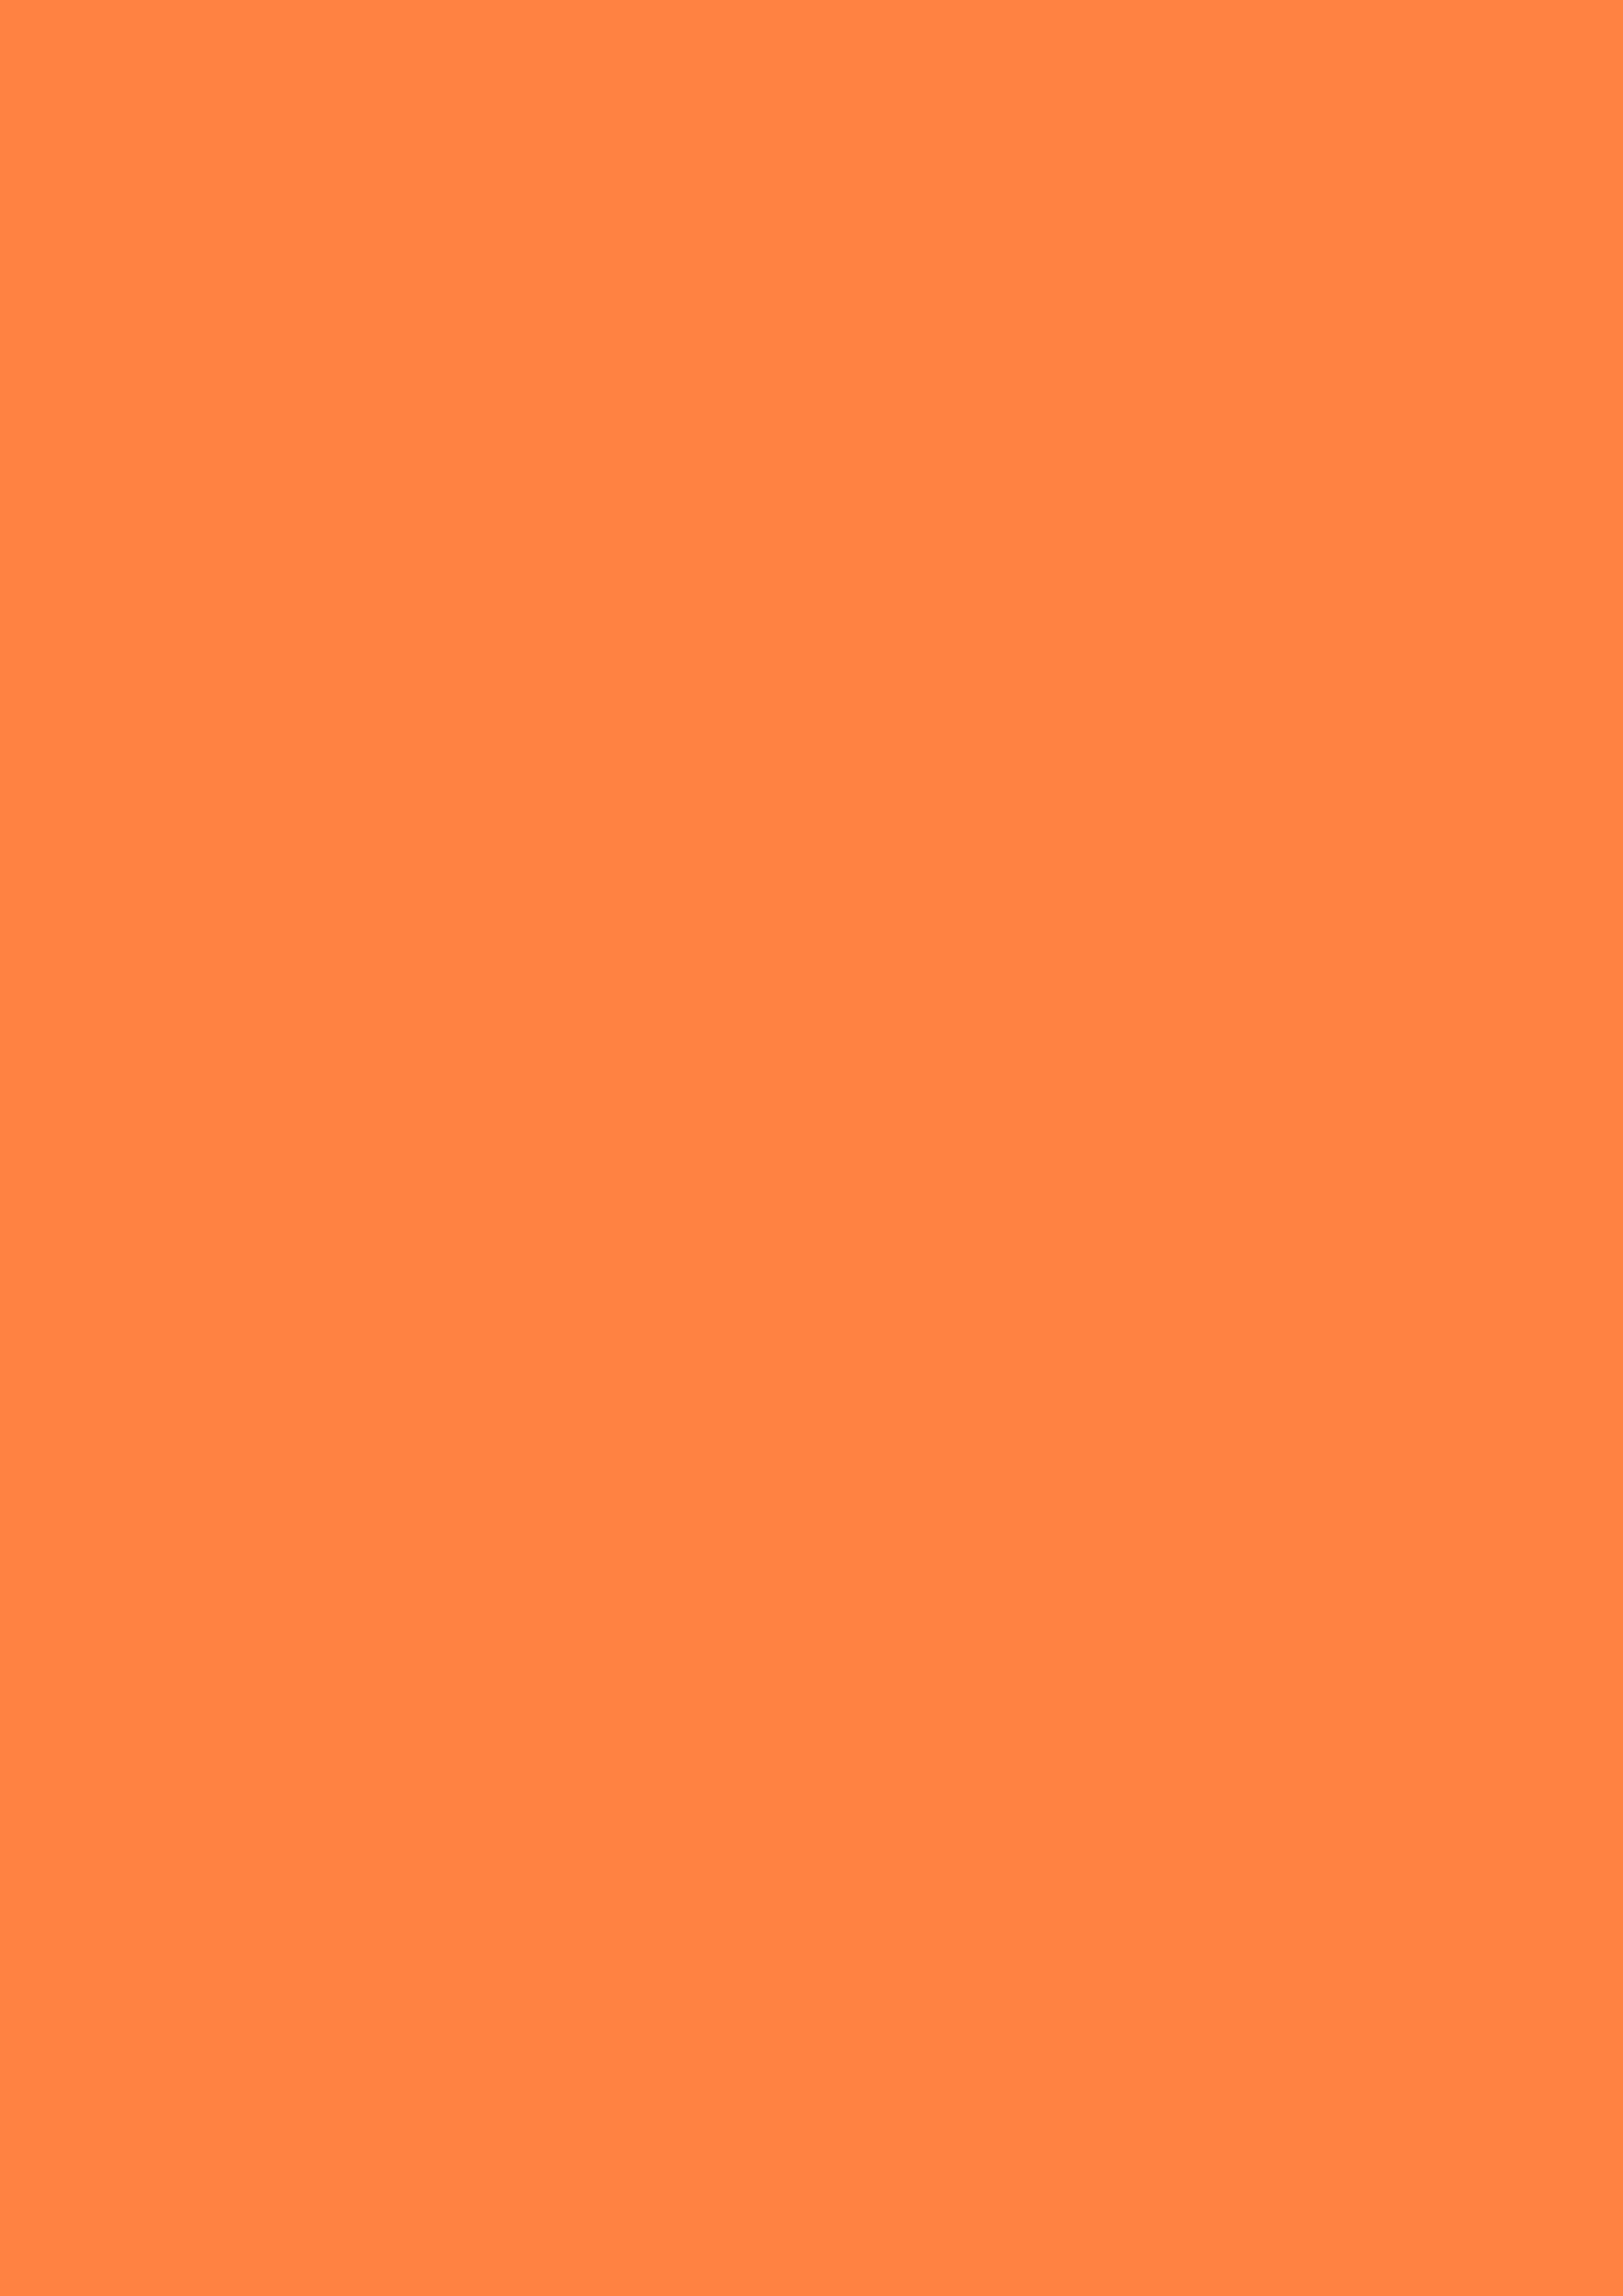 2480x3508 Mango Tango Solid Color Background